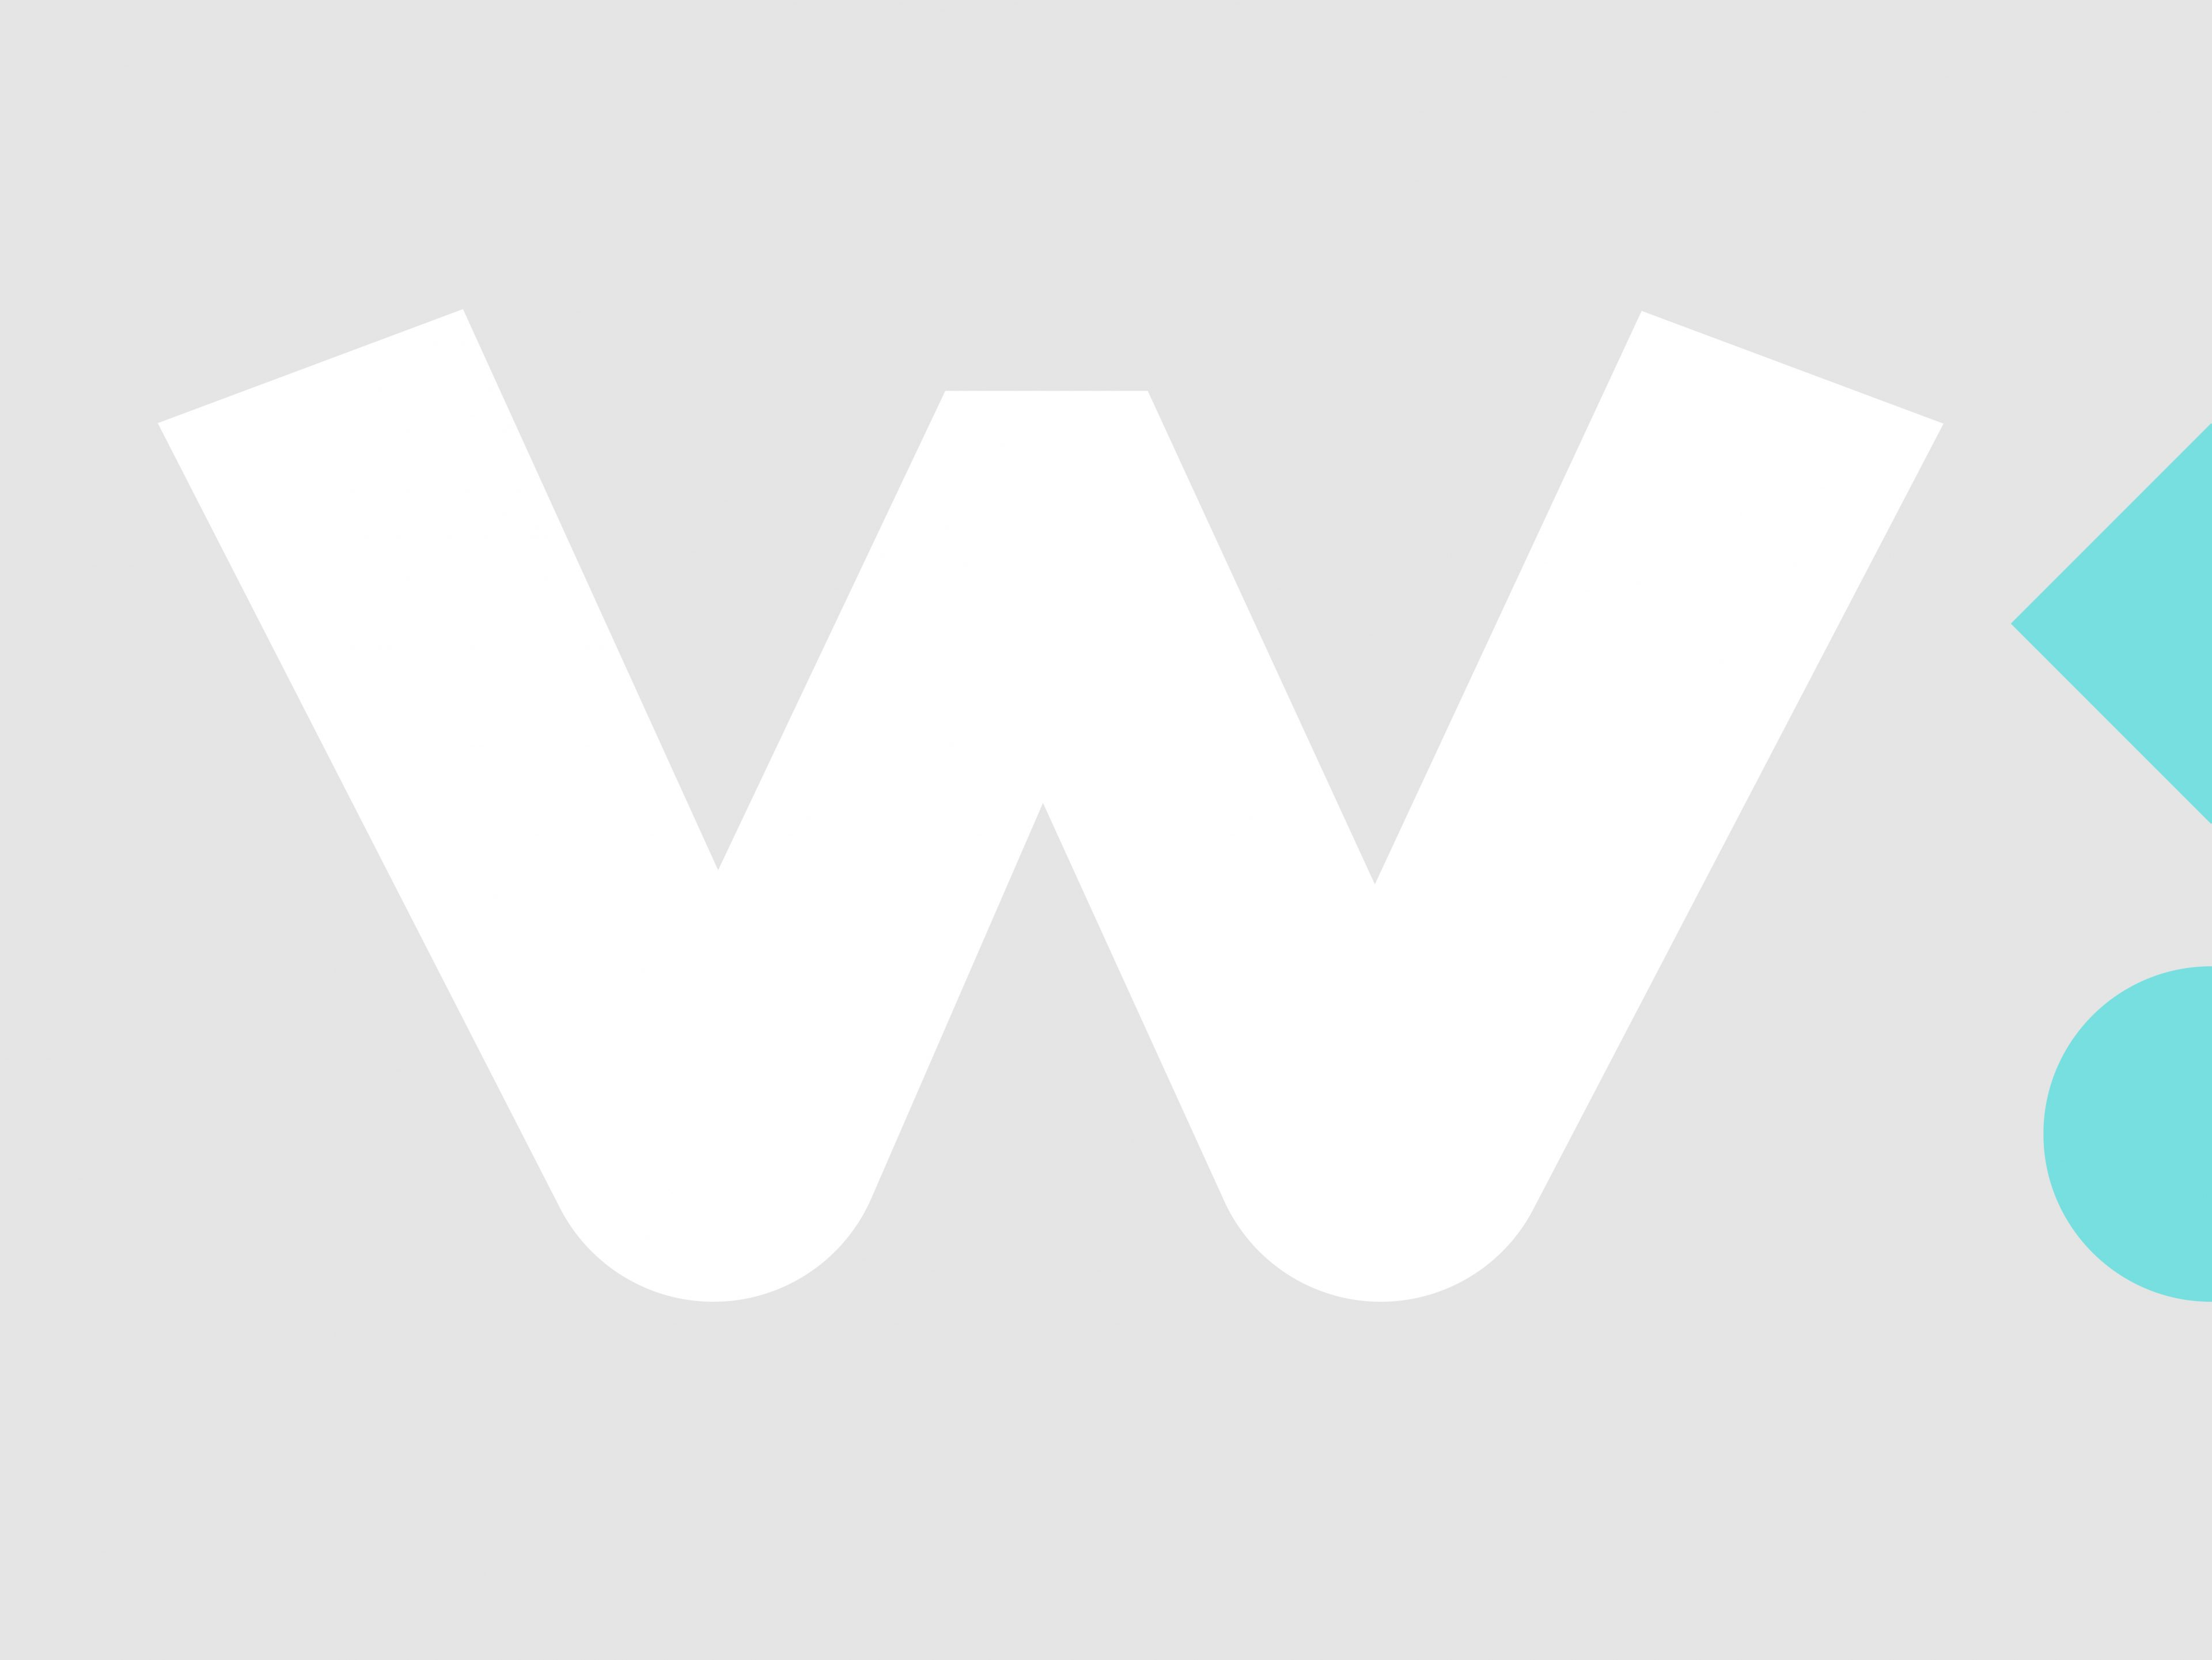 Brand icon of W and blue graphic devices